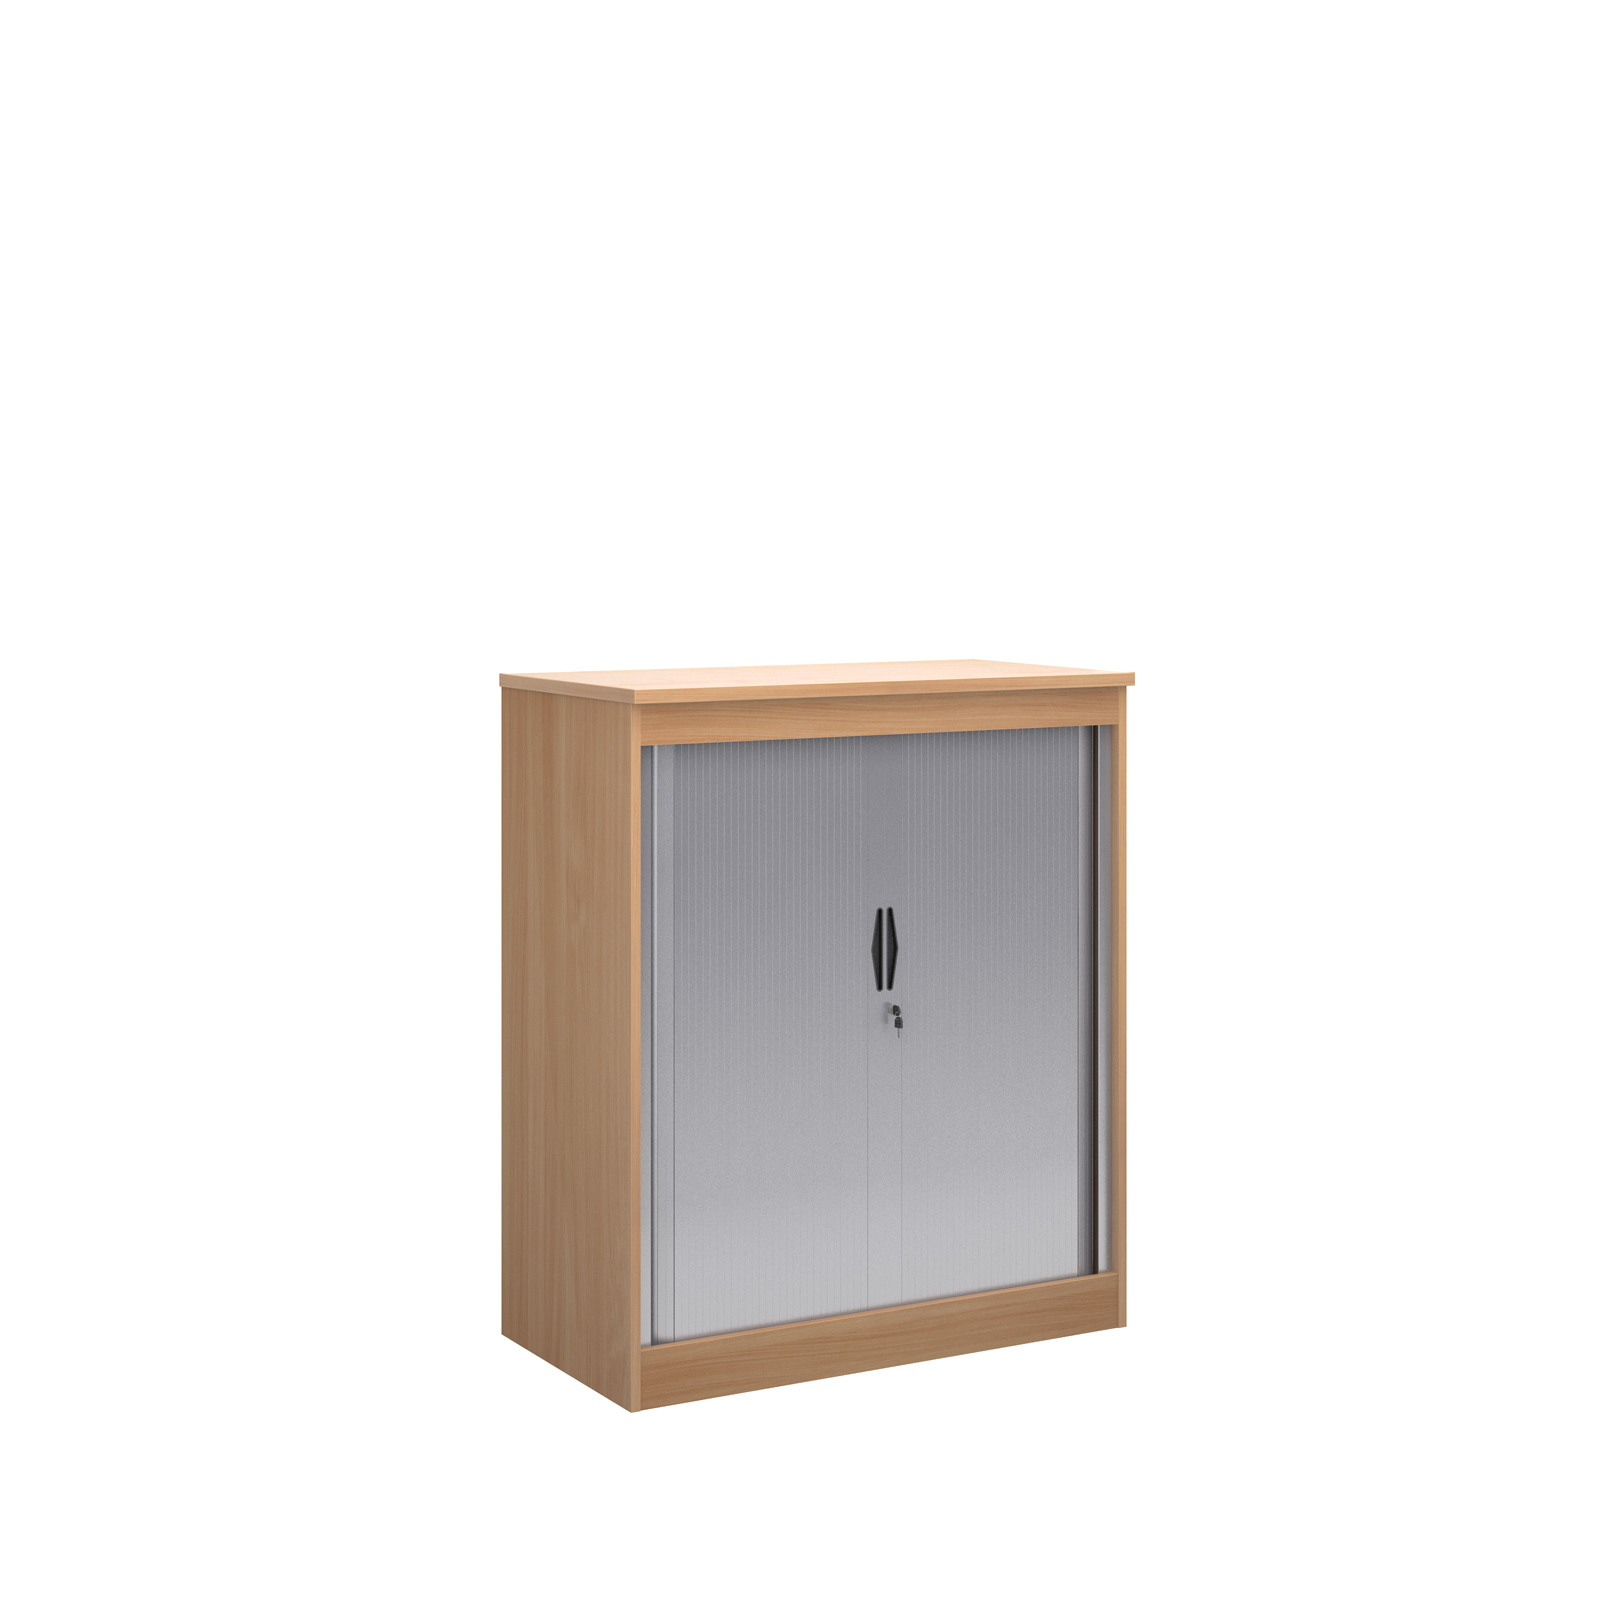 1200mm high system horizontal tambour door cupboard in beech